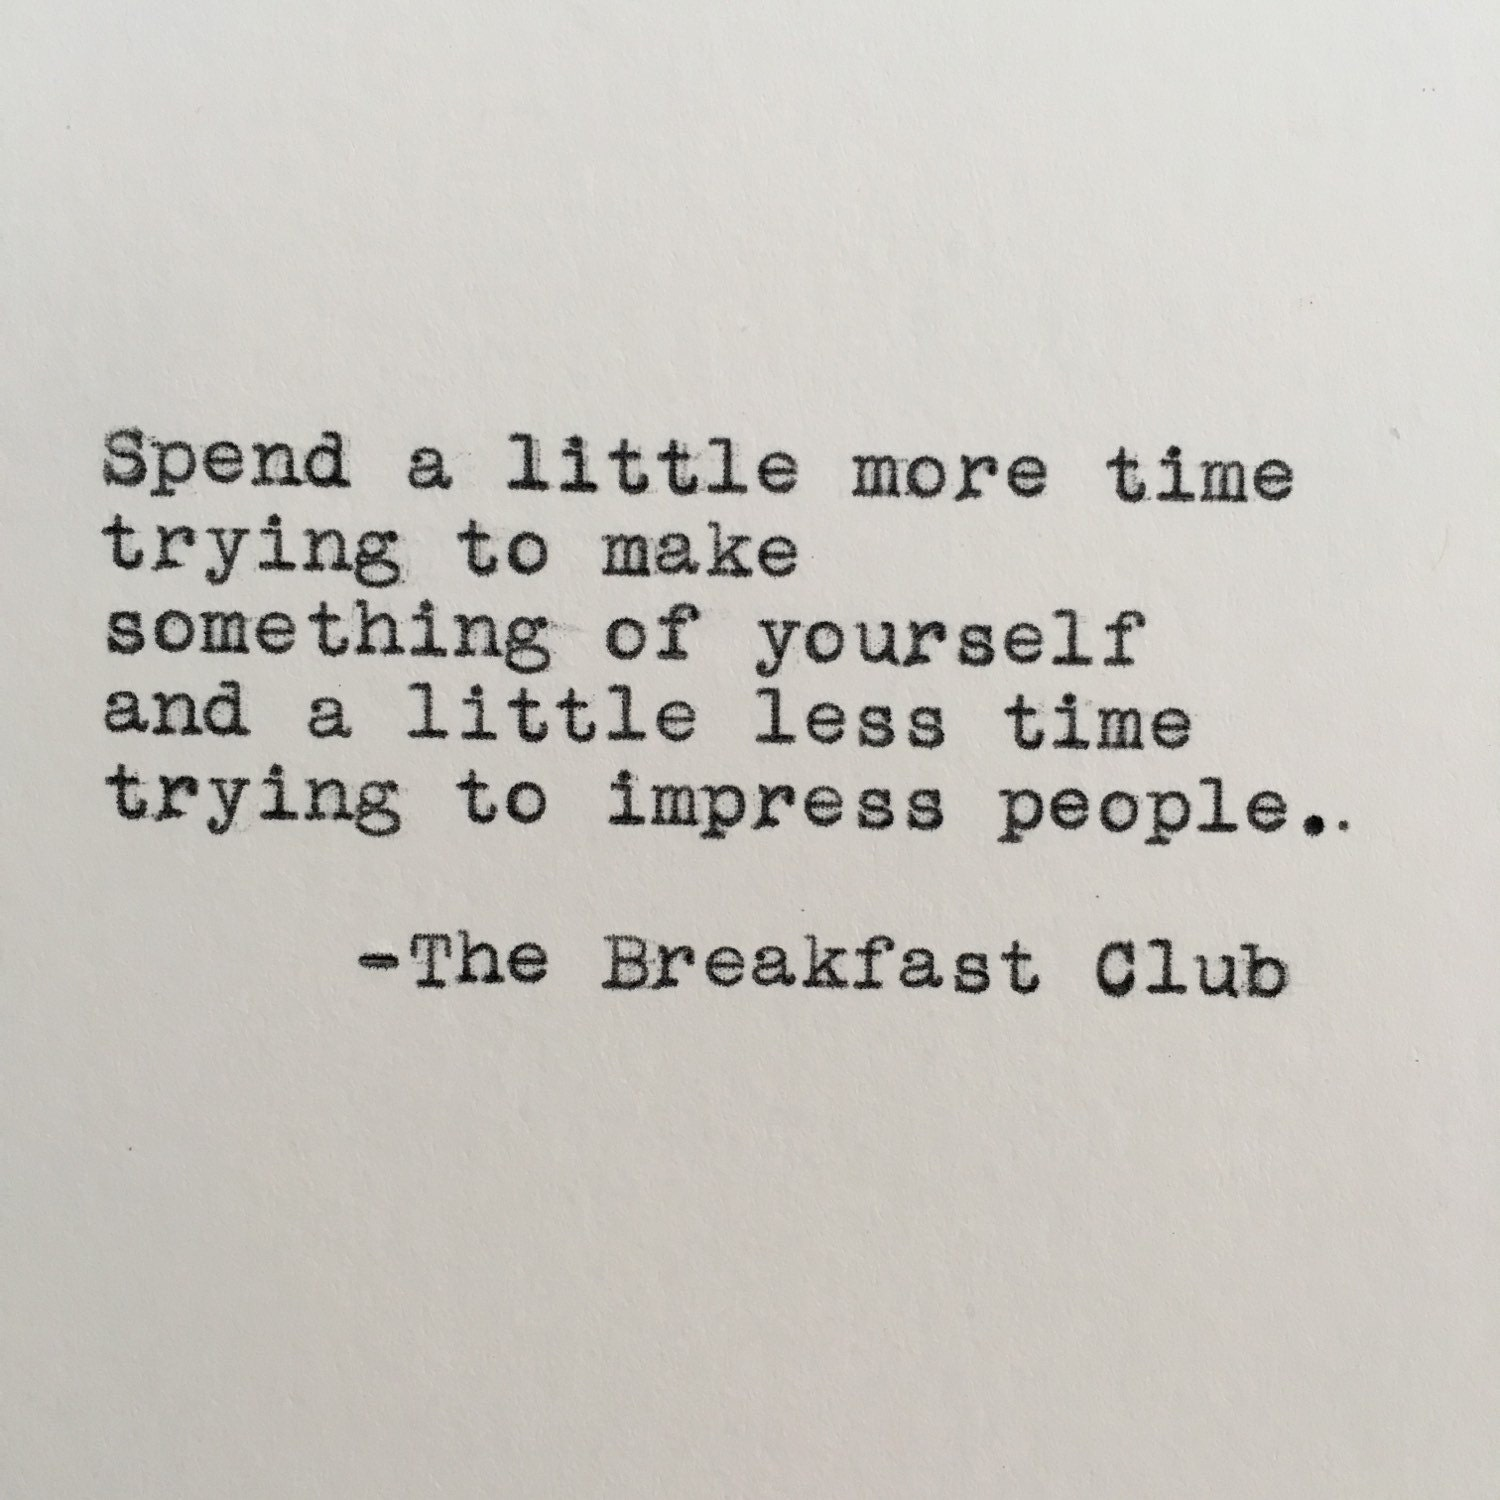 The breakfast club essay quote